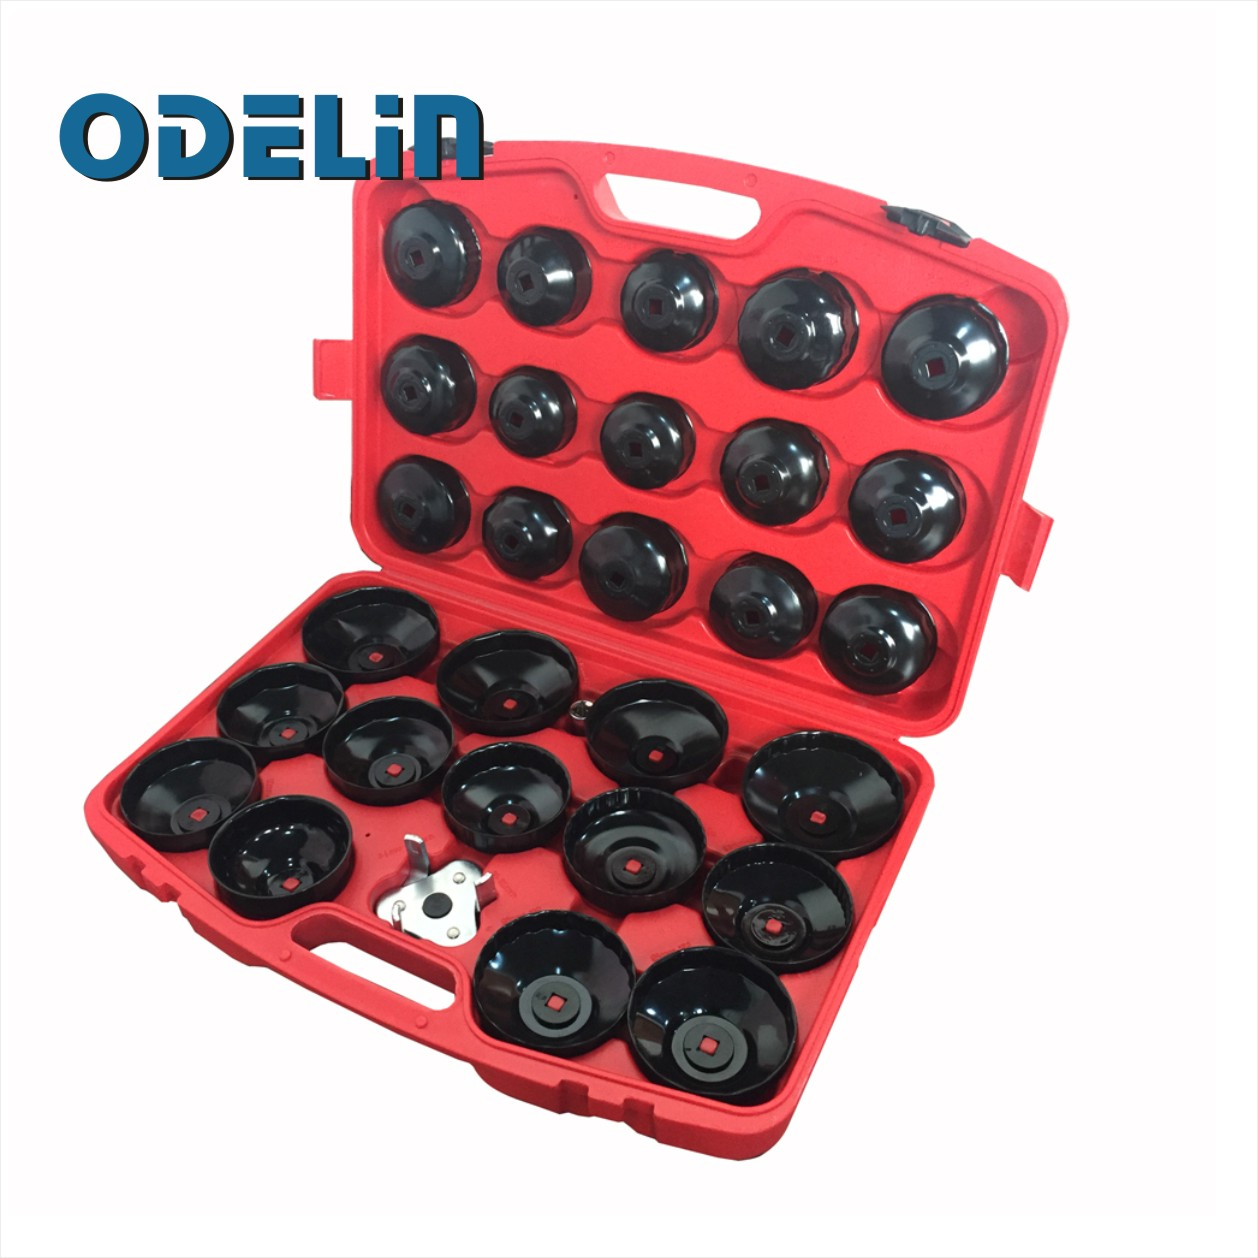 30pc Oil Filter Removal Wrench Cap Car Garage Tool Set Loosen Tighten Cup Socket30pc Oil Filter Removal Wrench Cap Car Garage Tool Set Loosen Tighten Cup Socket